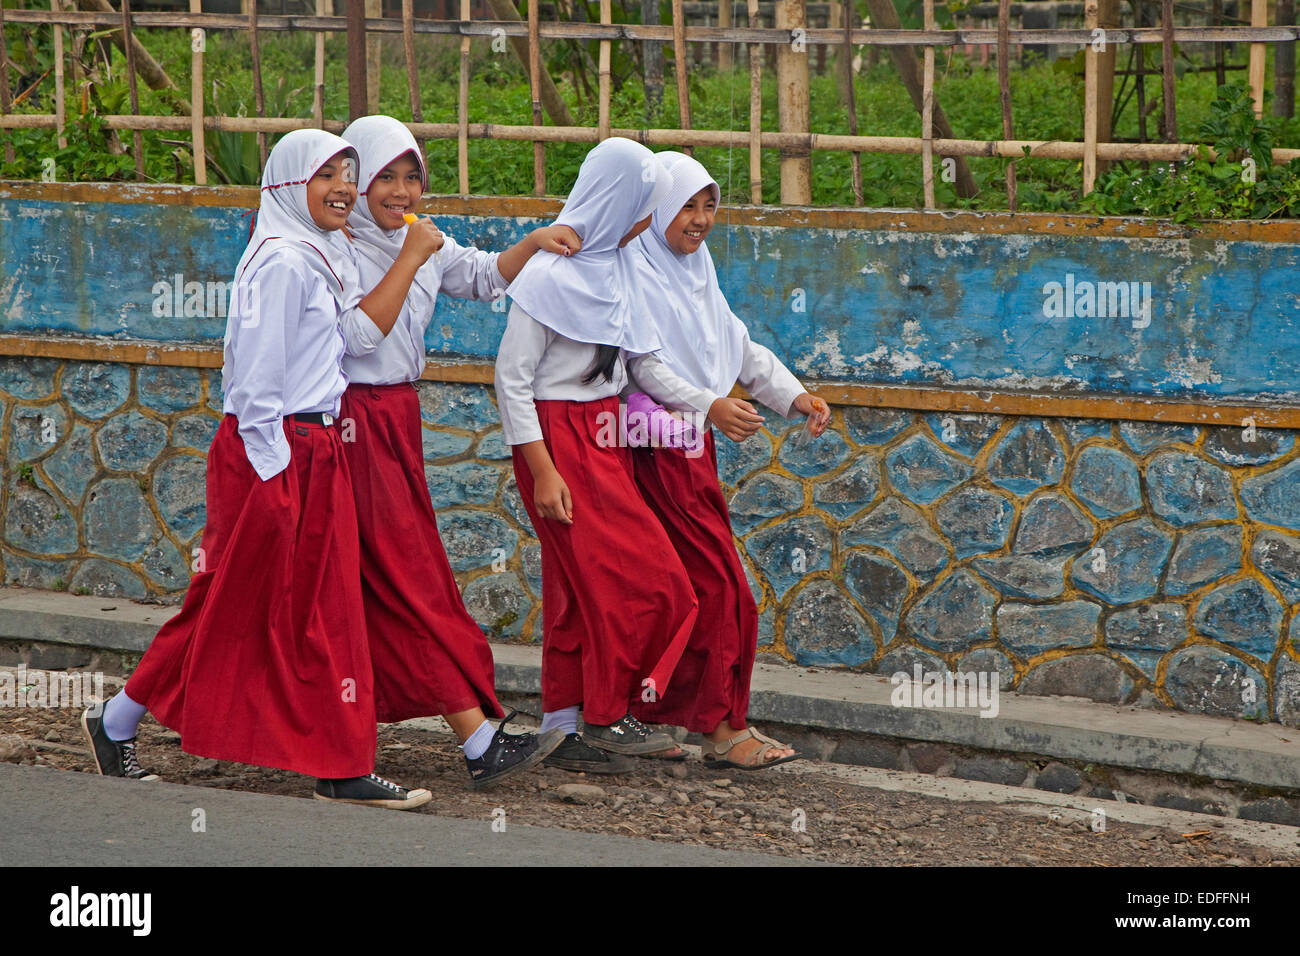 Happy Indonesian school children wearing red and white Hijab uniforms, Kota Bandung, West Java, Indonesia - Stock Image